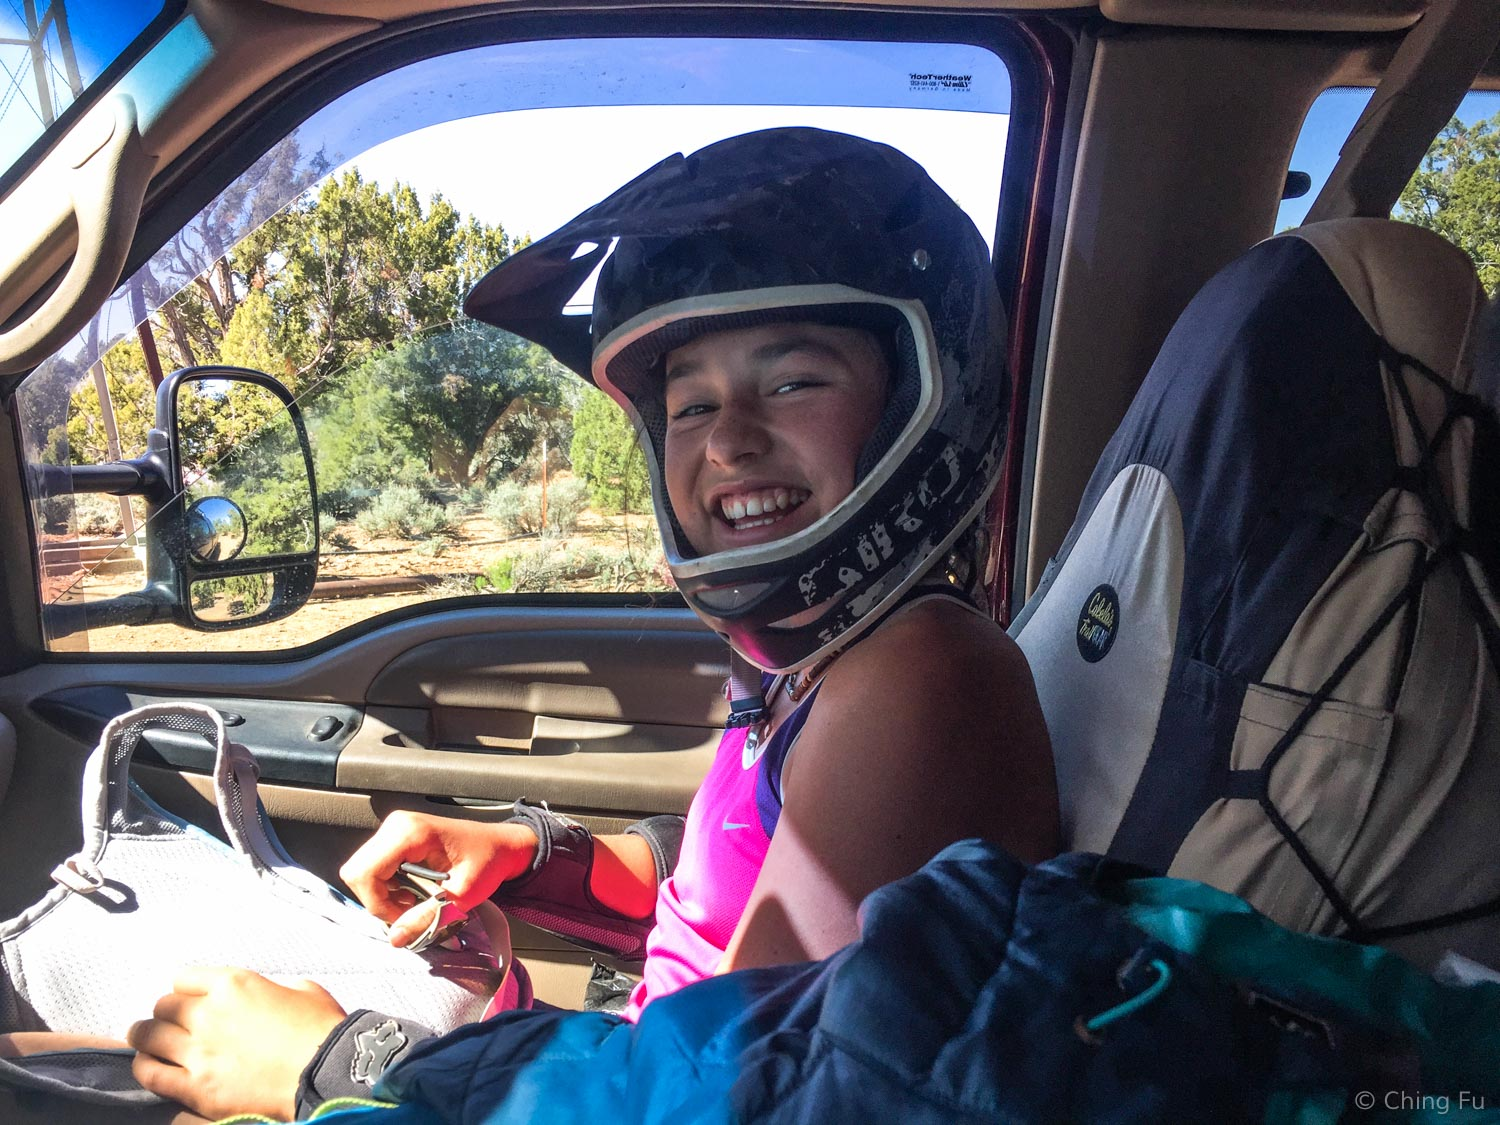 Side story: After our ride I get in the driver's seat and there's Mara sitting next to me with her full face helmet still on. I asked her if she thought I was that  bad  of a driver!